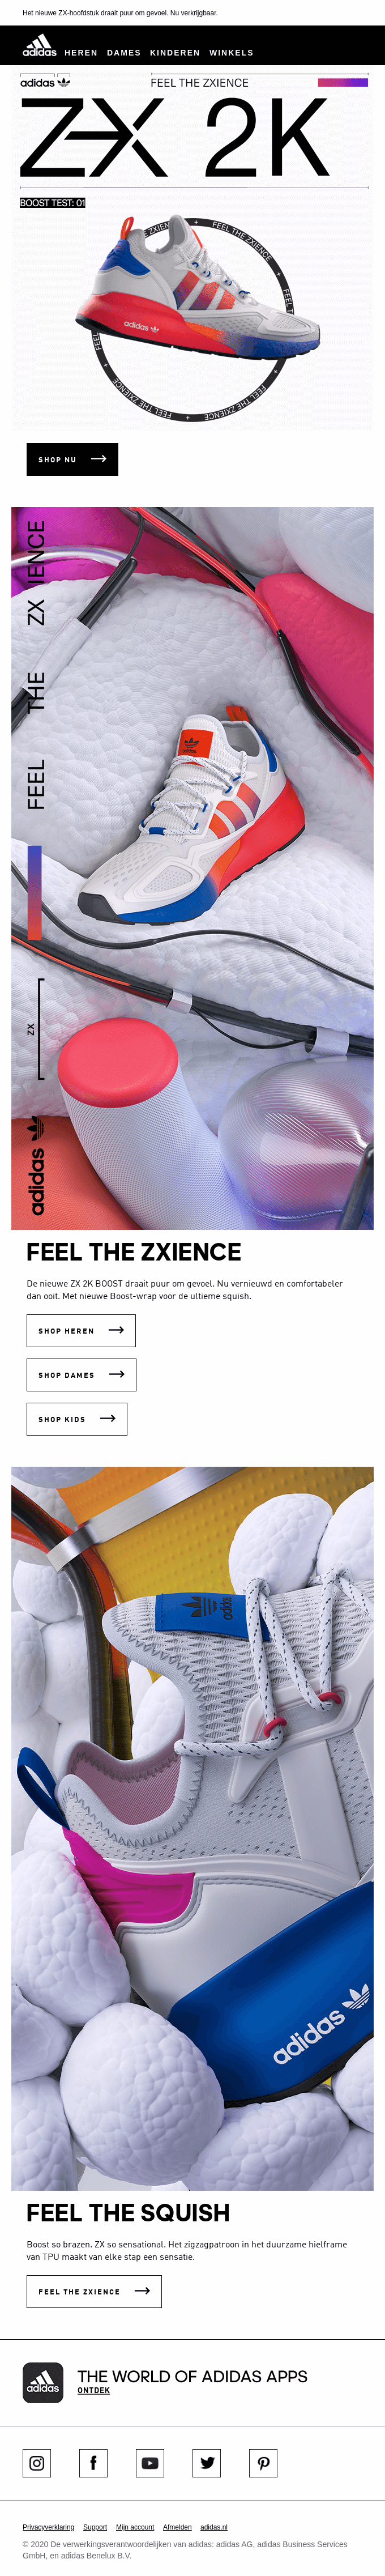 Adidas email with 3D imagery and macro details